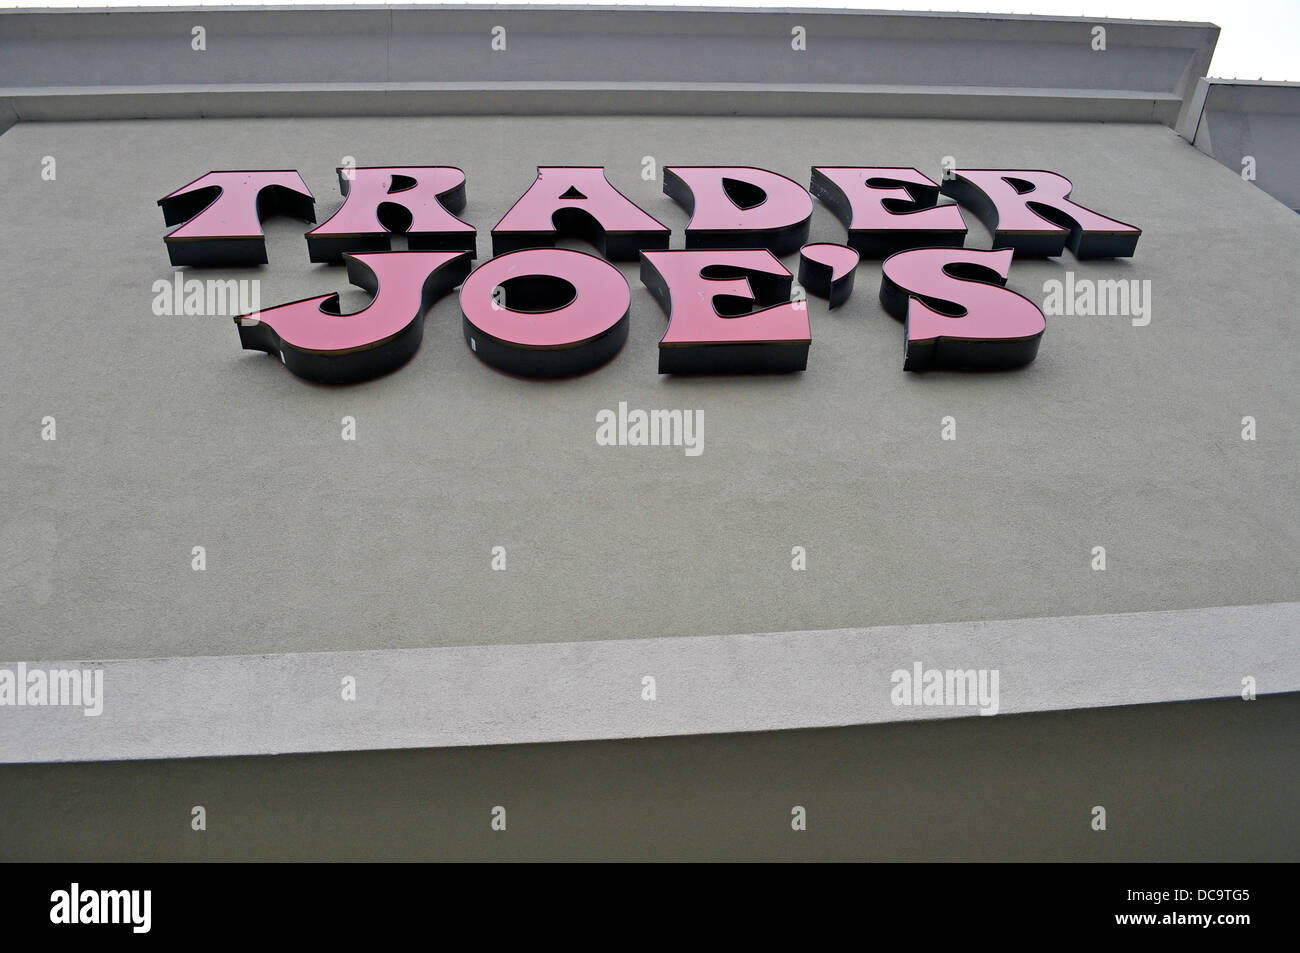 Trader Joe's store in San Francisco, California, USA - Stock Image